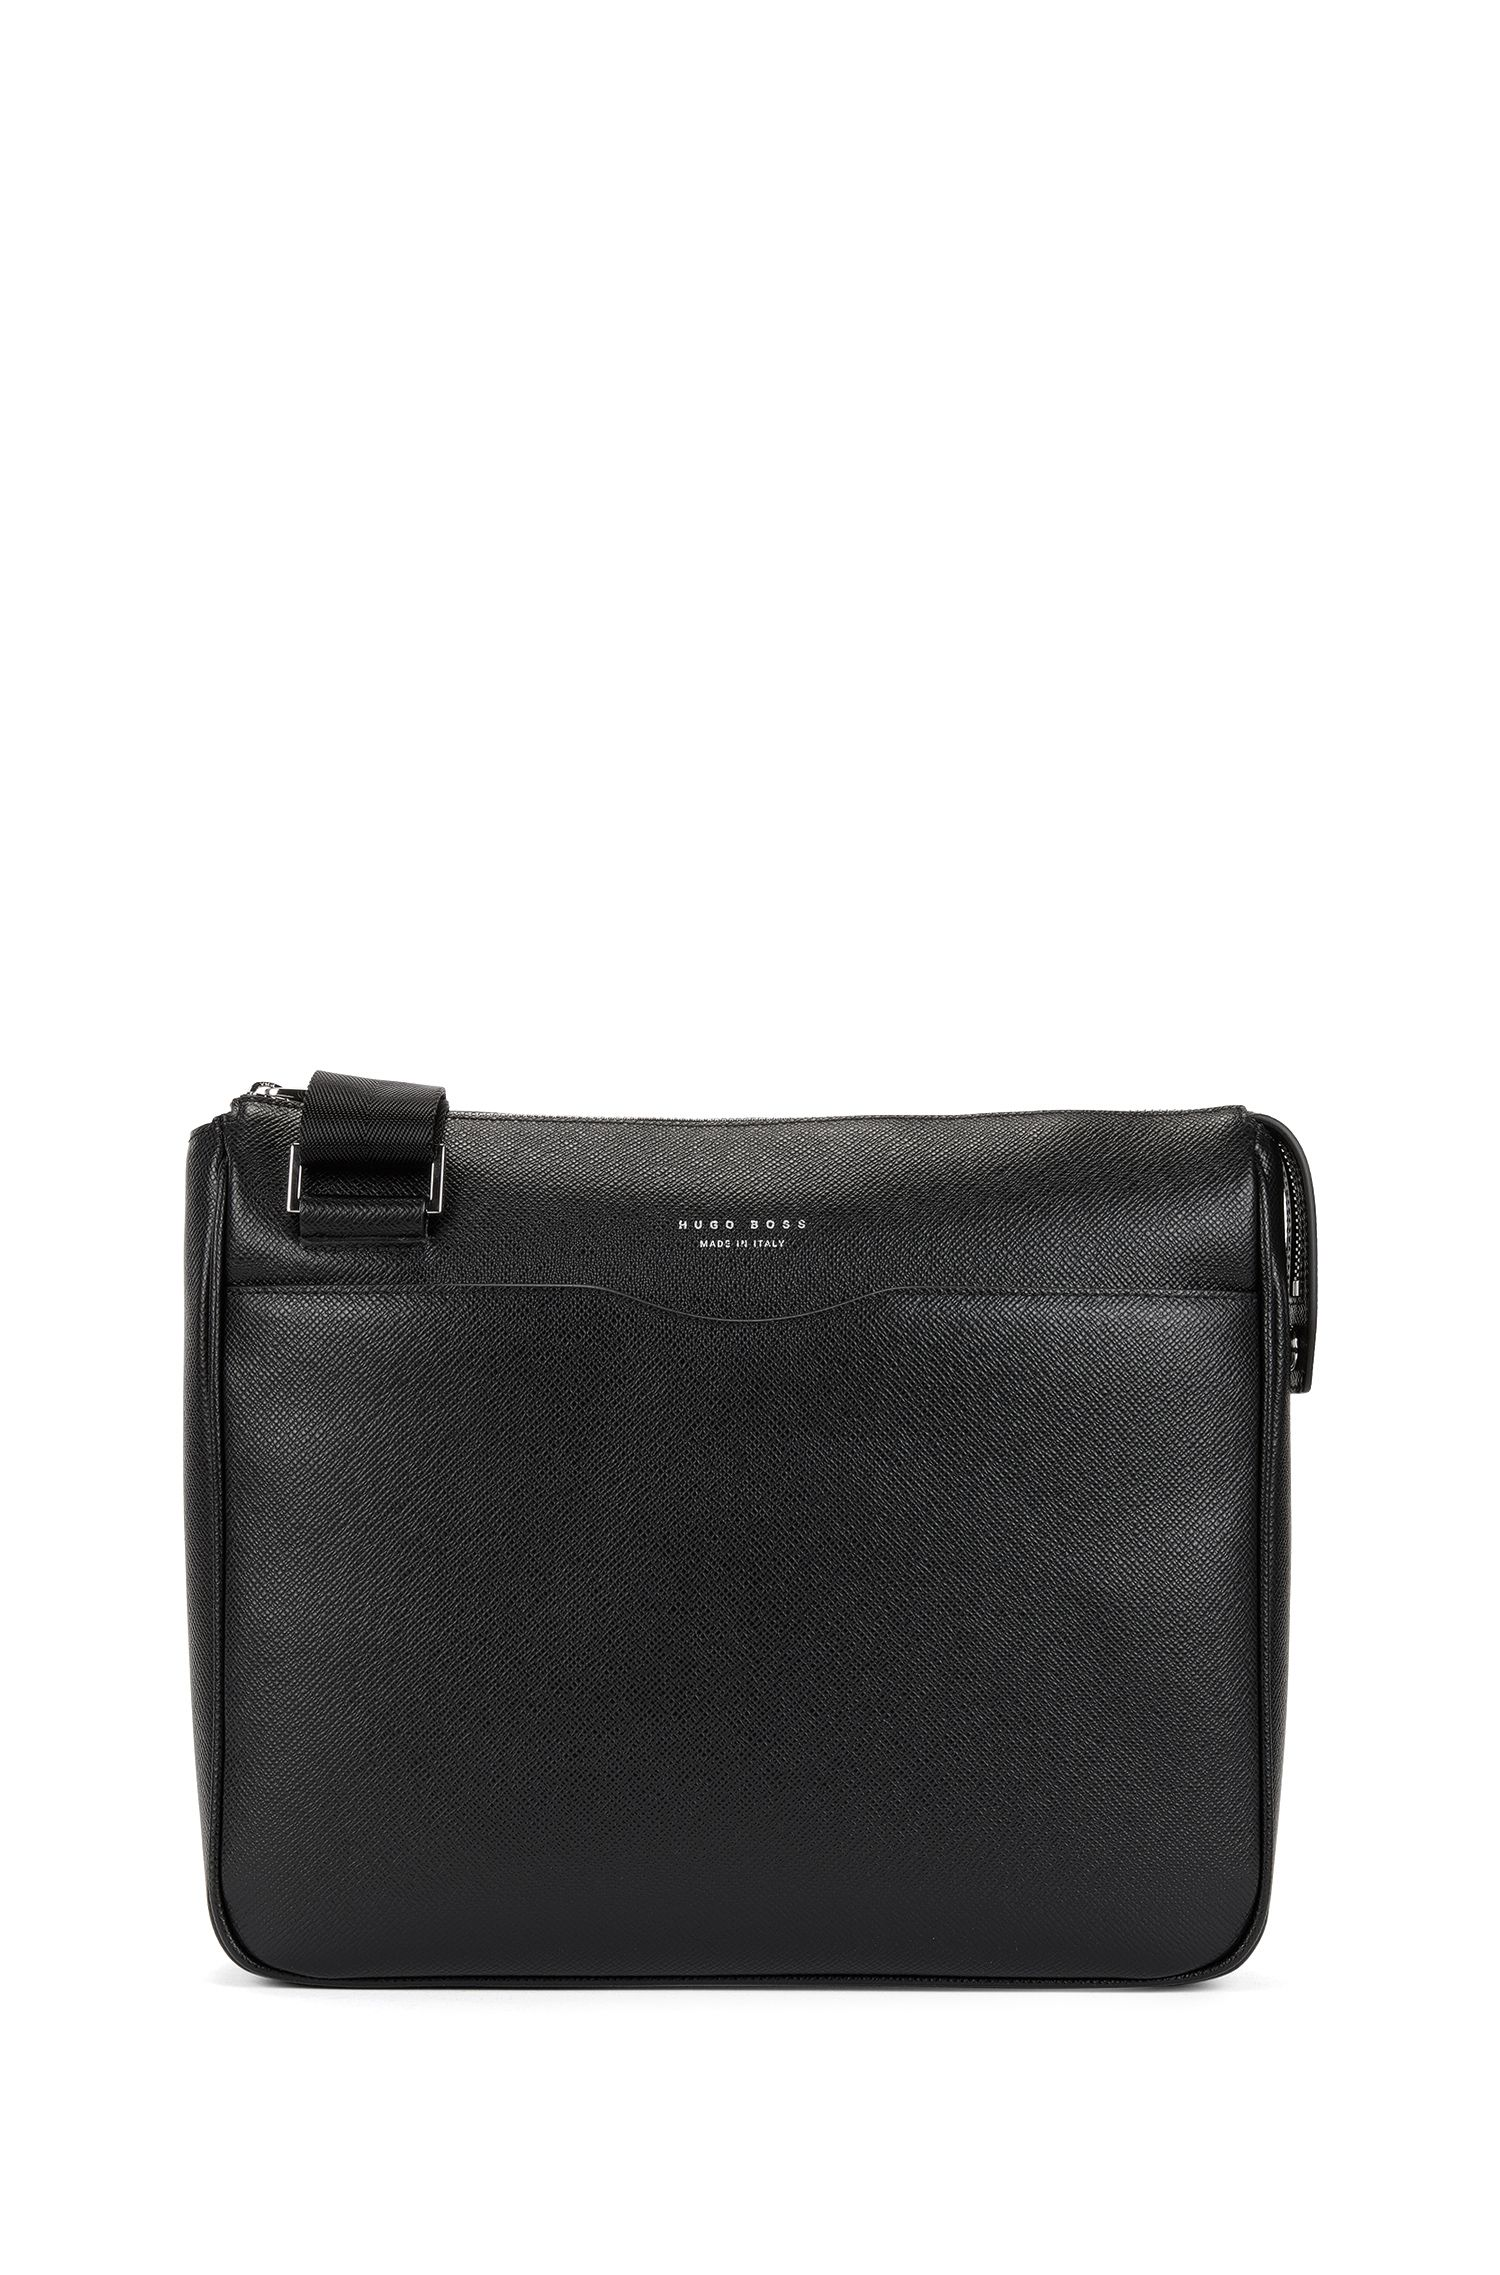 Crossbody-tas van bedrukt leer uit de Signature Collection